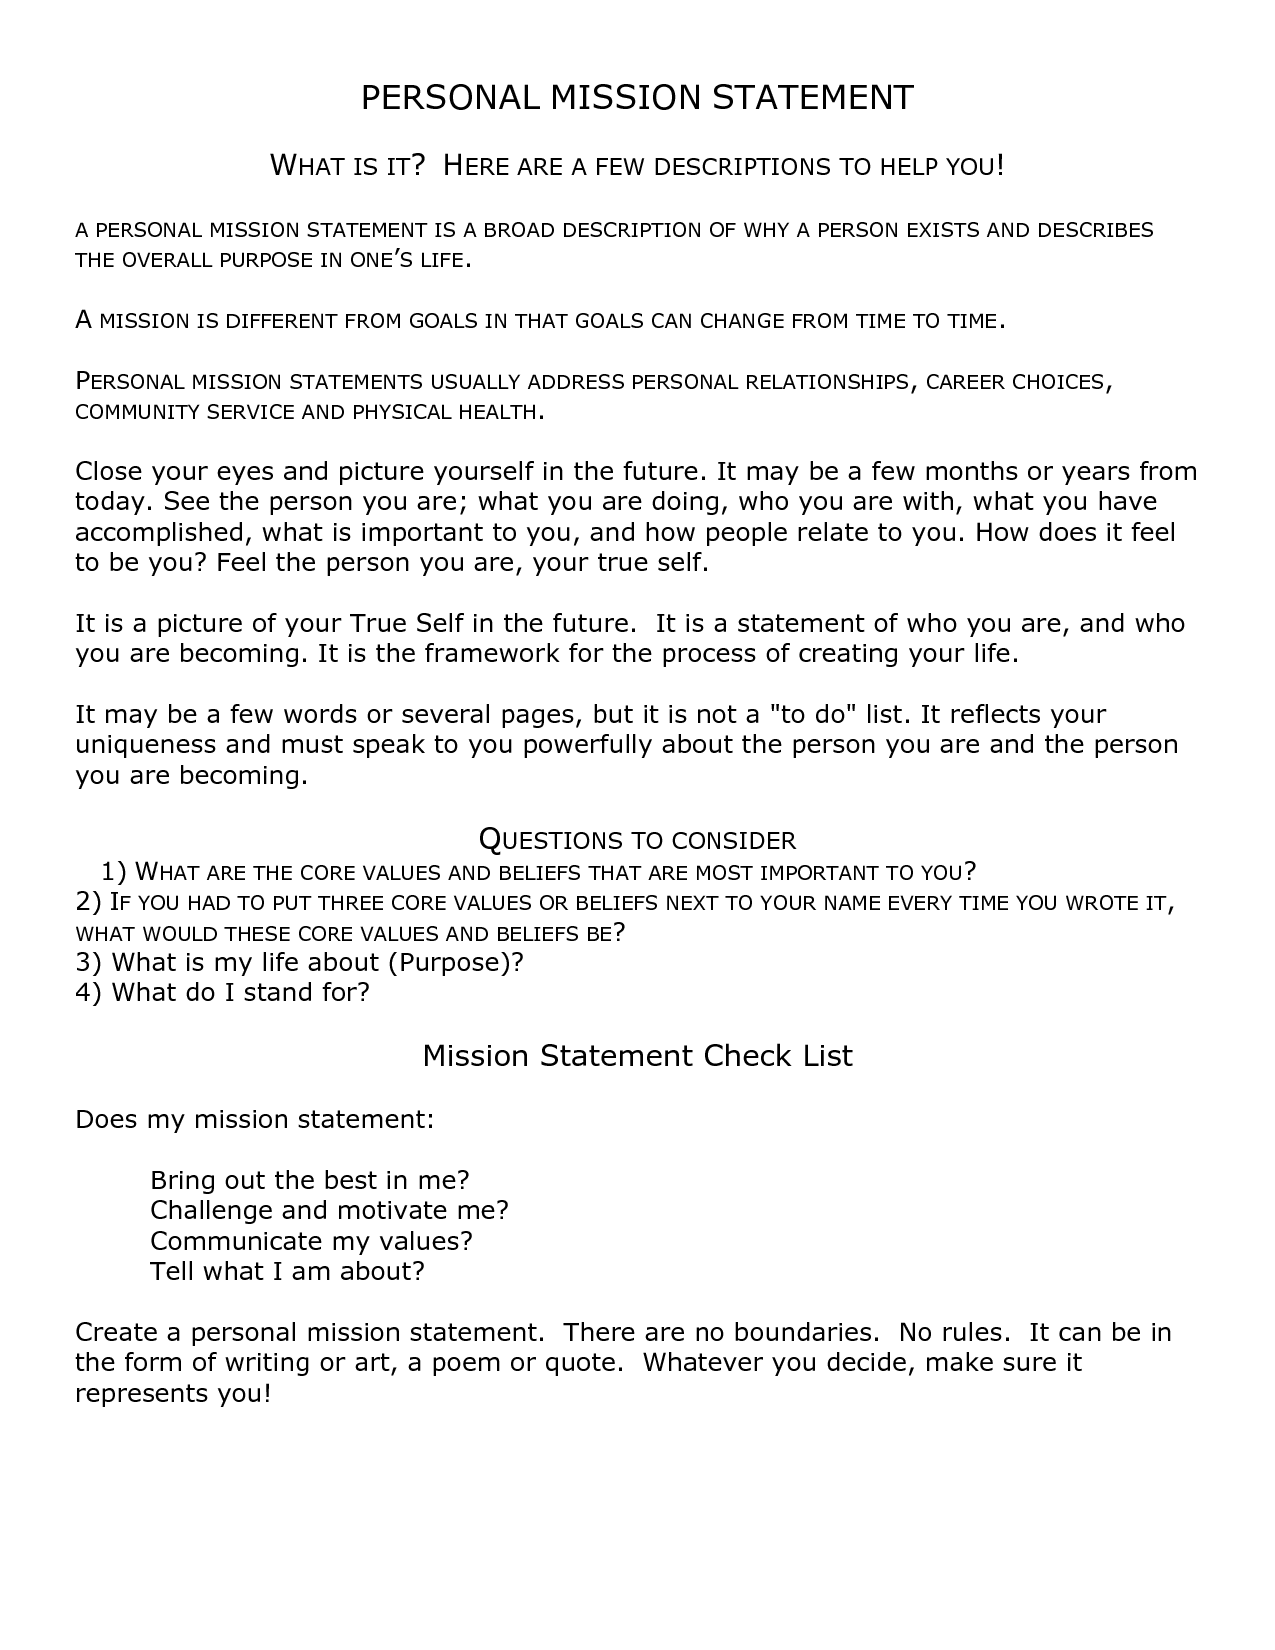 worksheet Personal Mission Statement Worksheet 4 free mission statement templates word excel sheet pdf download and see examples of templates